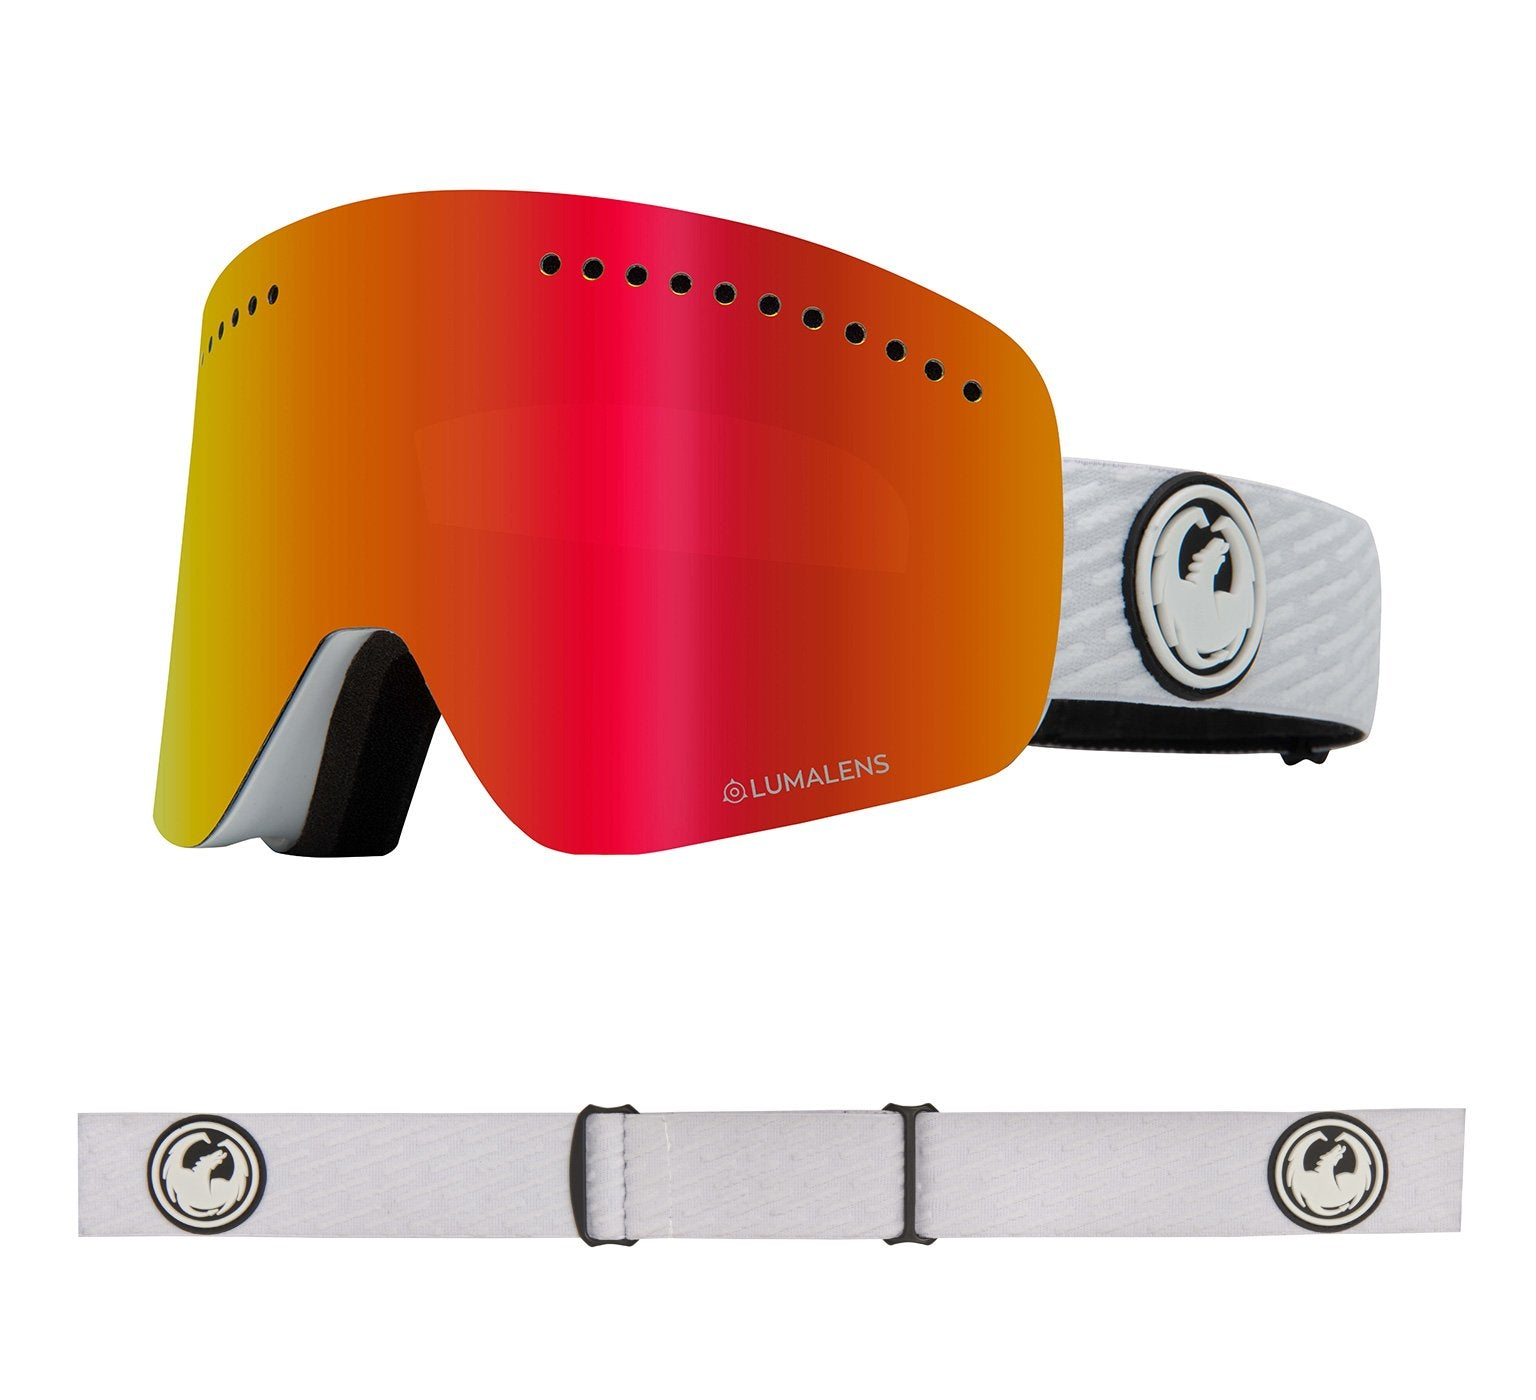 NFX - PK White ; with Lumalens Red Ionized & Lumalens Pink Ionized Lens